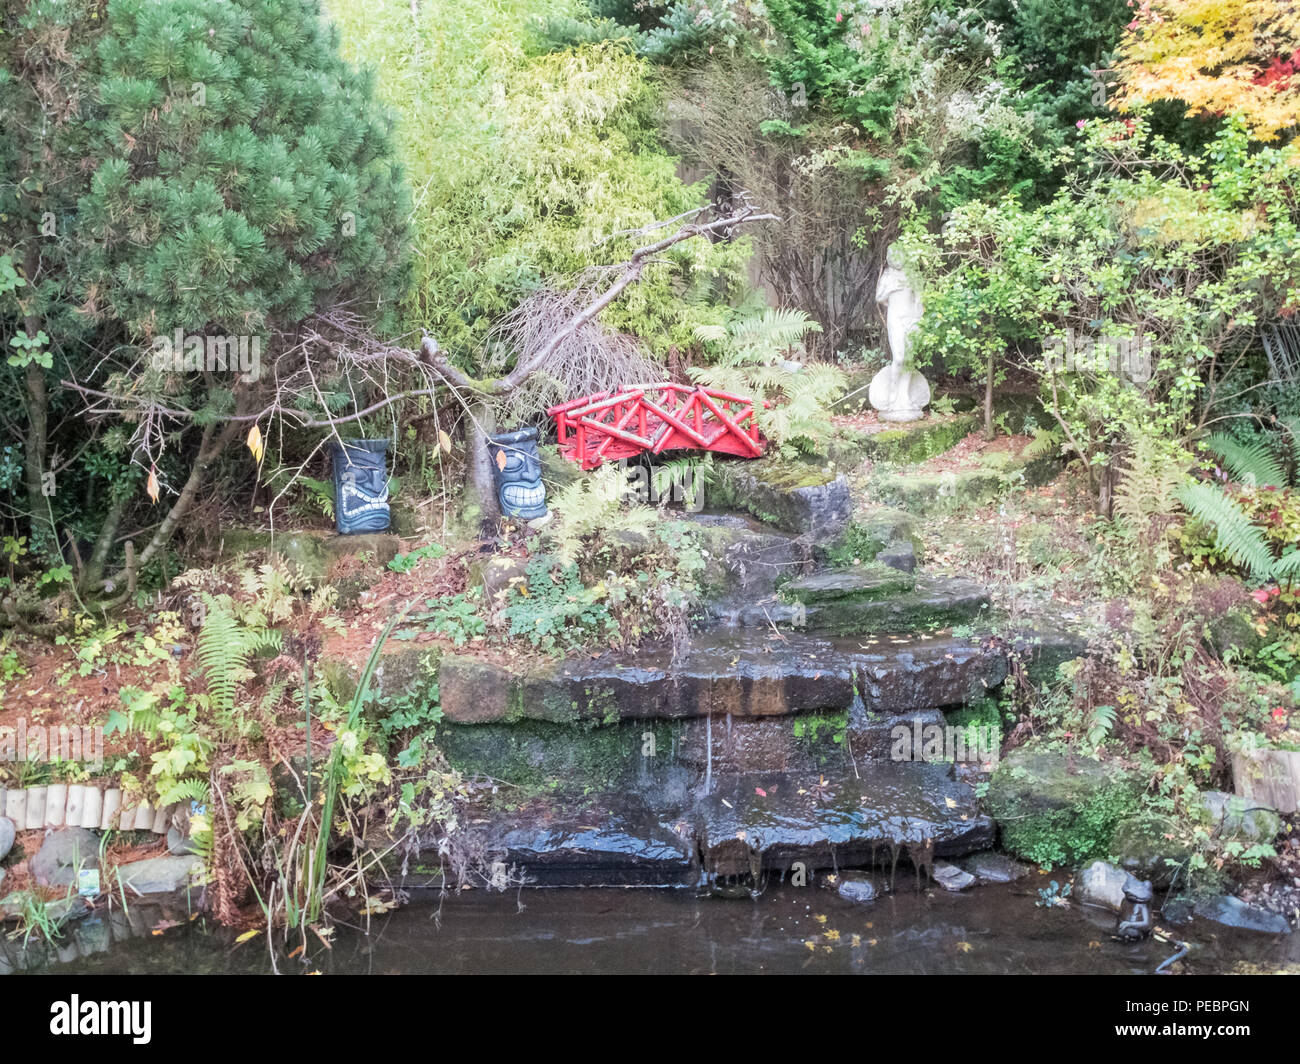 A minature garden waterfall feature with ornaments and running water. - Stock Image